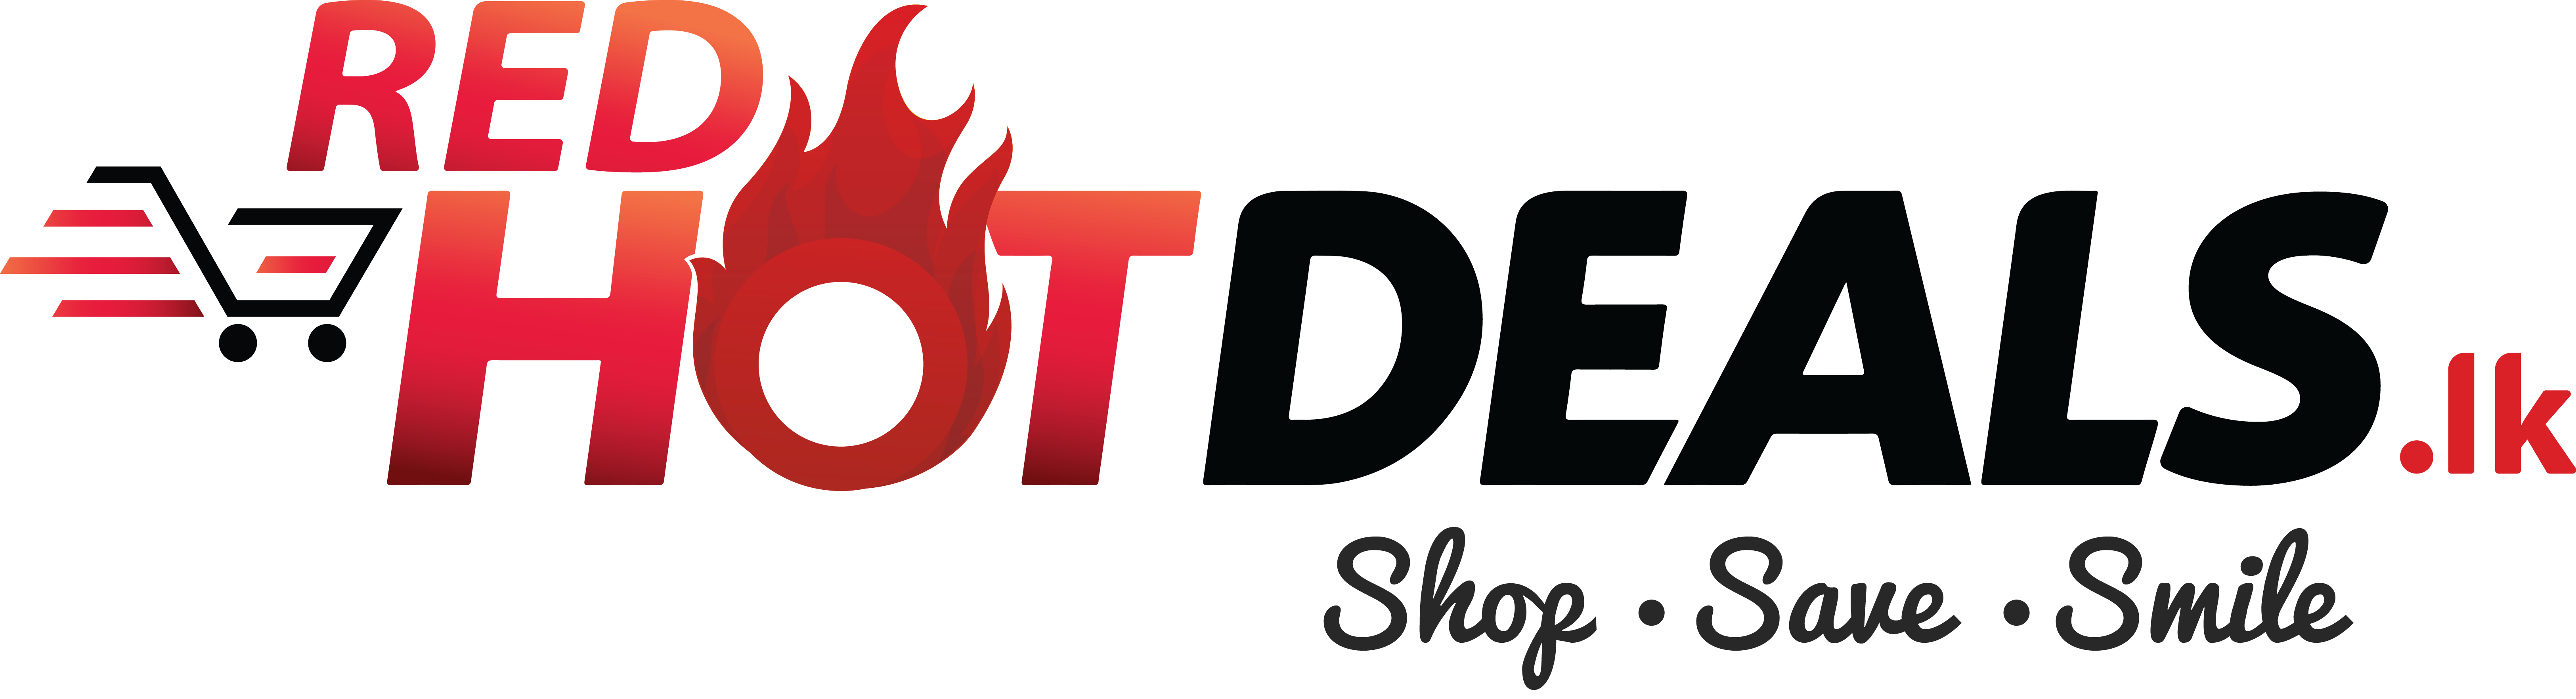 Red Hot Deals Logo